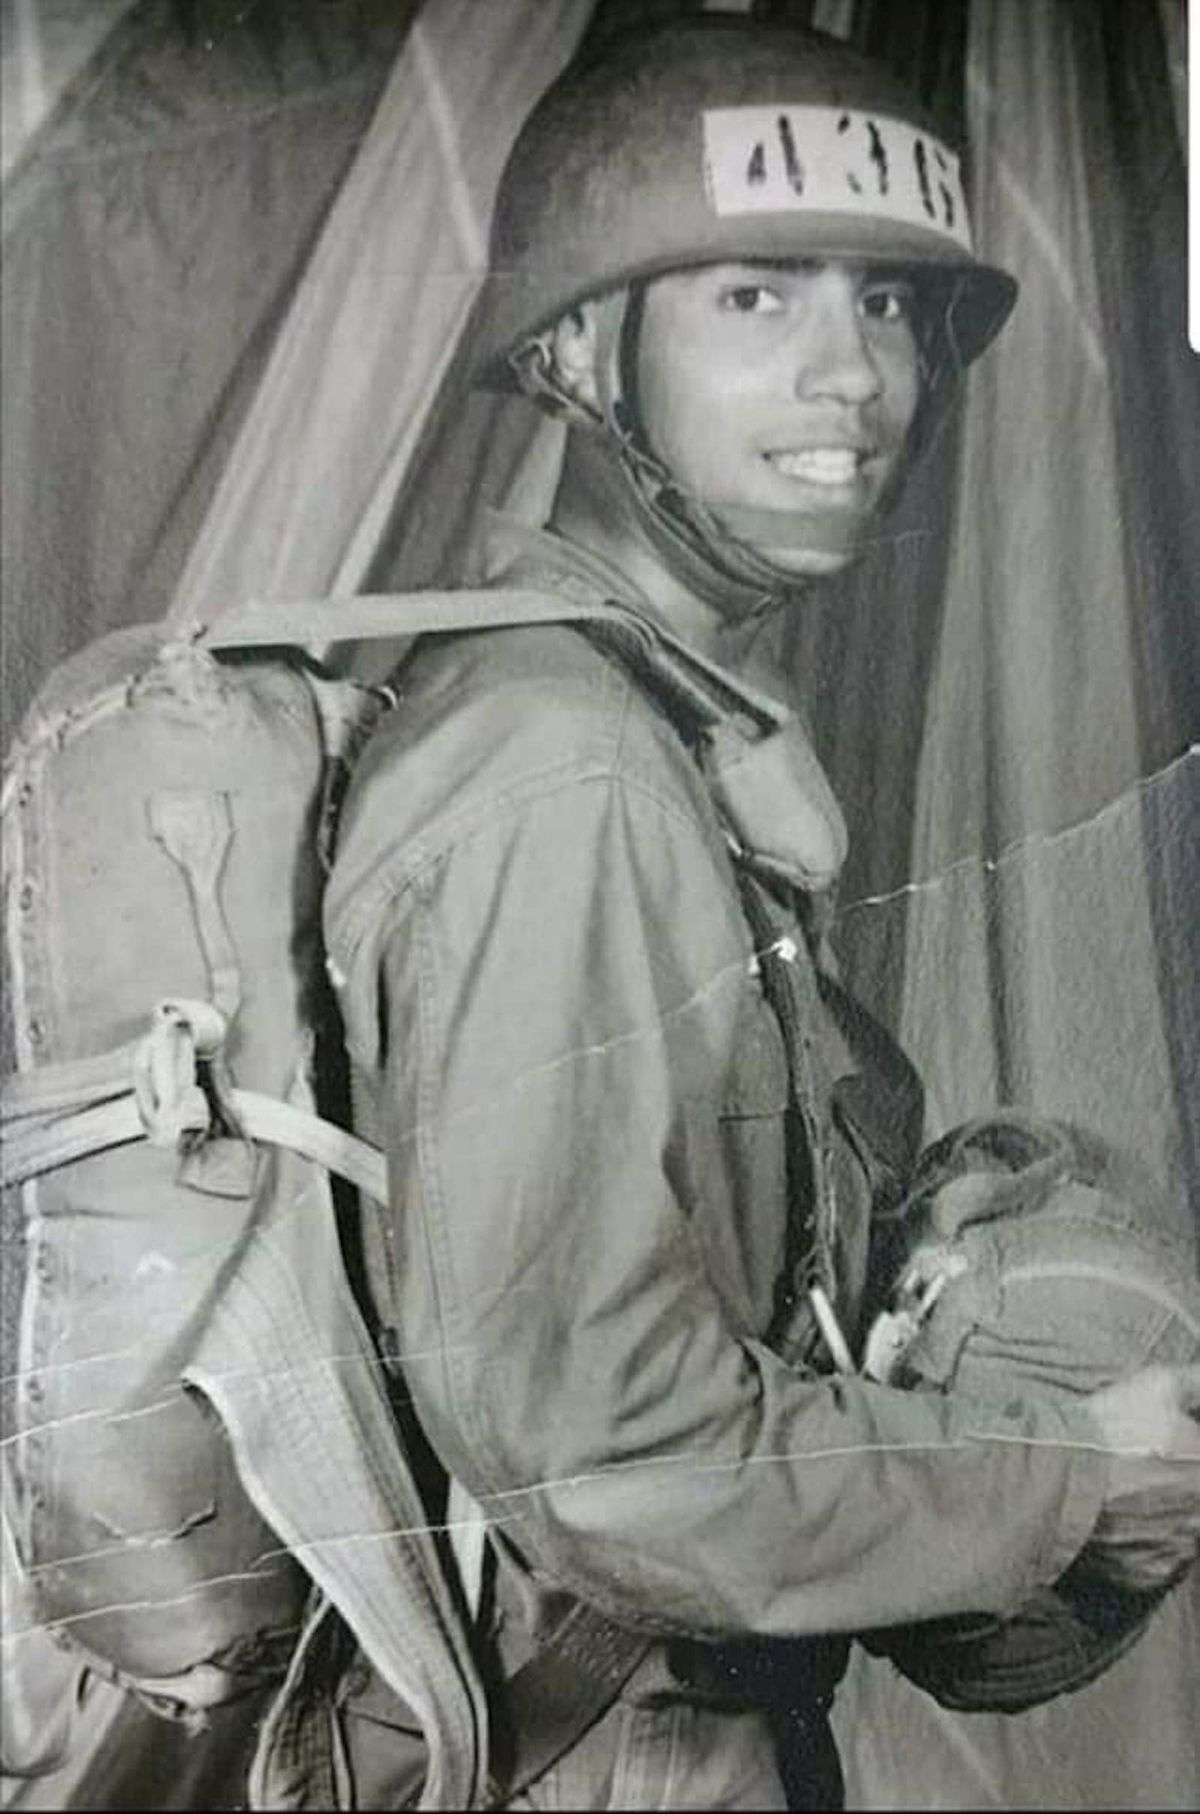 John Garrido Sr. was a member of the 101st Airborne Division.